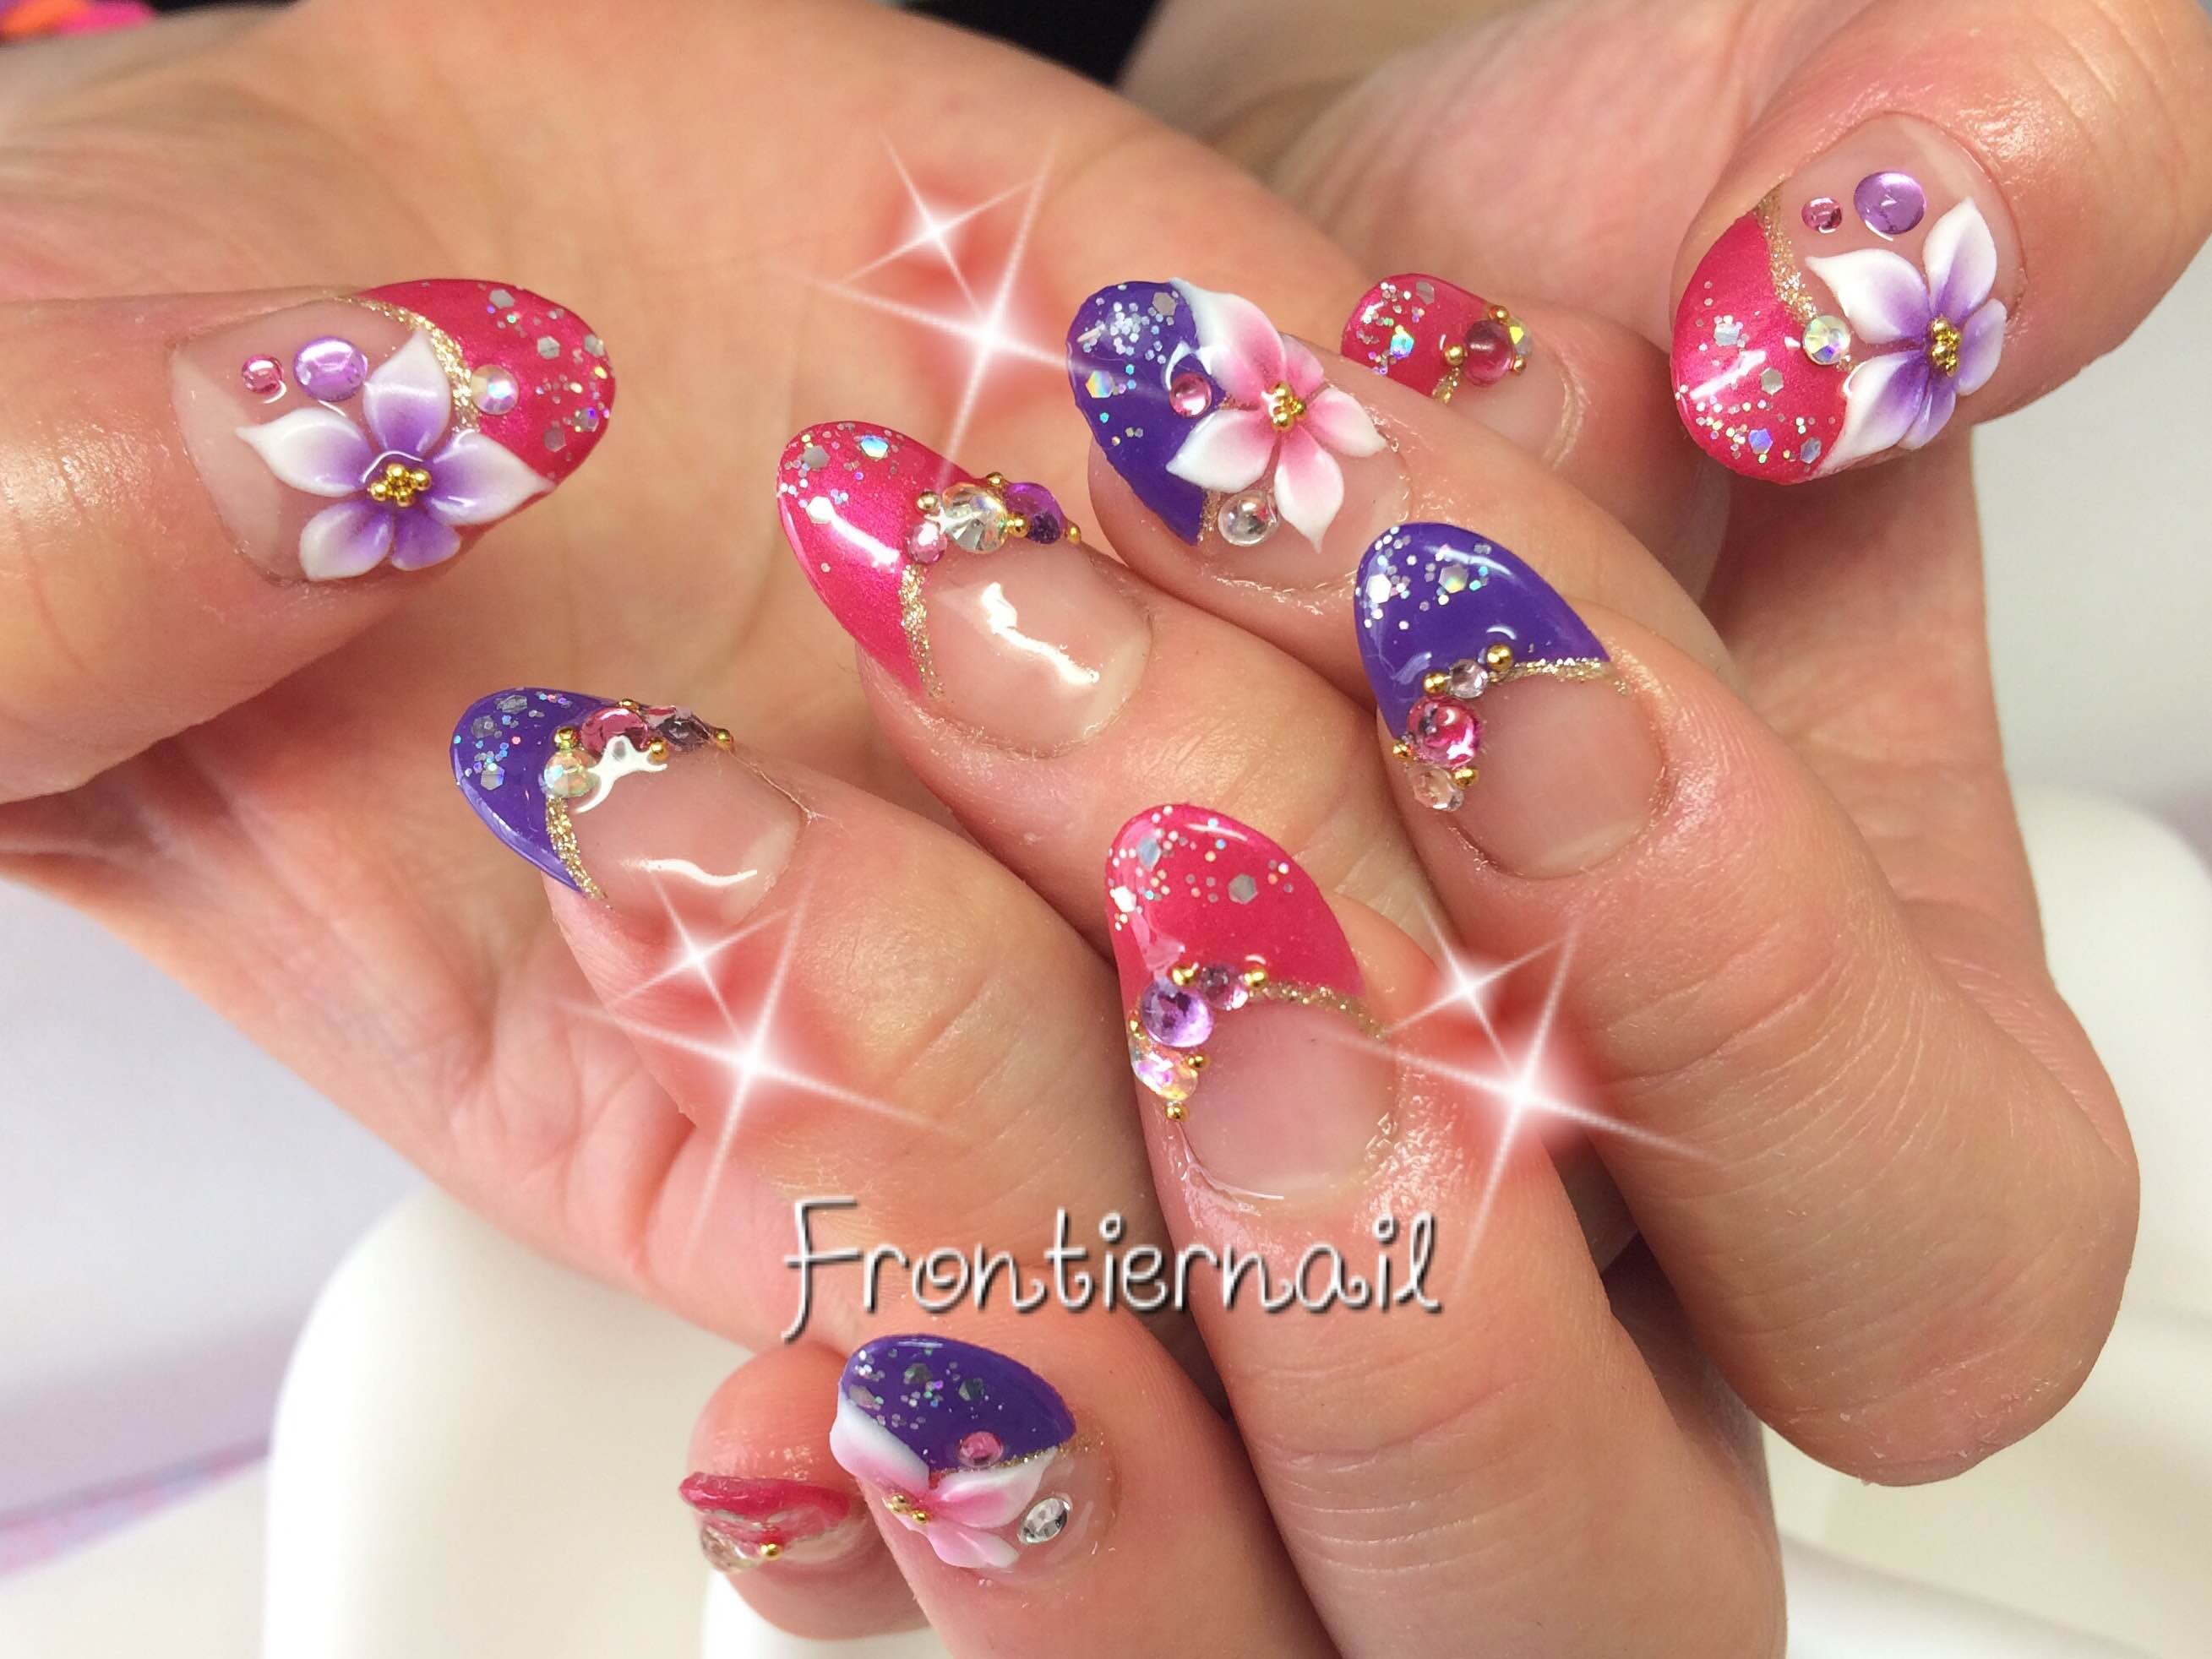 Frontiernailのネイル